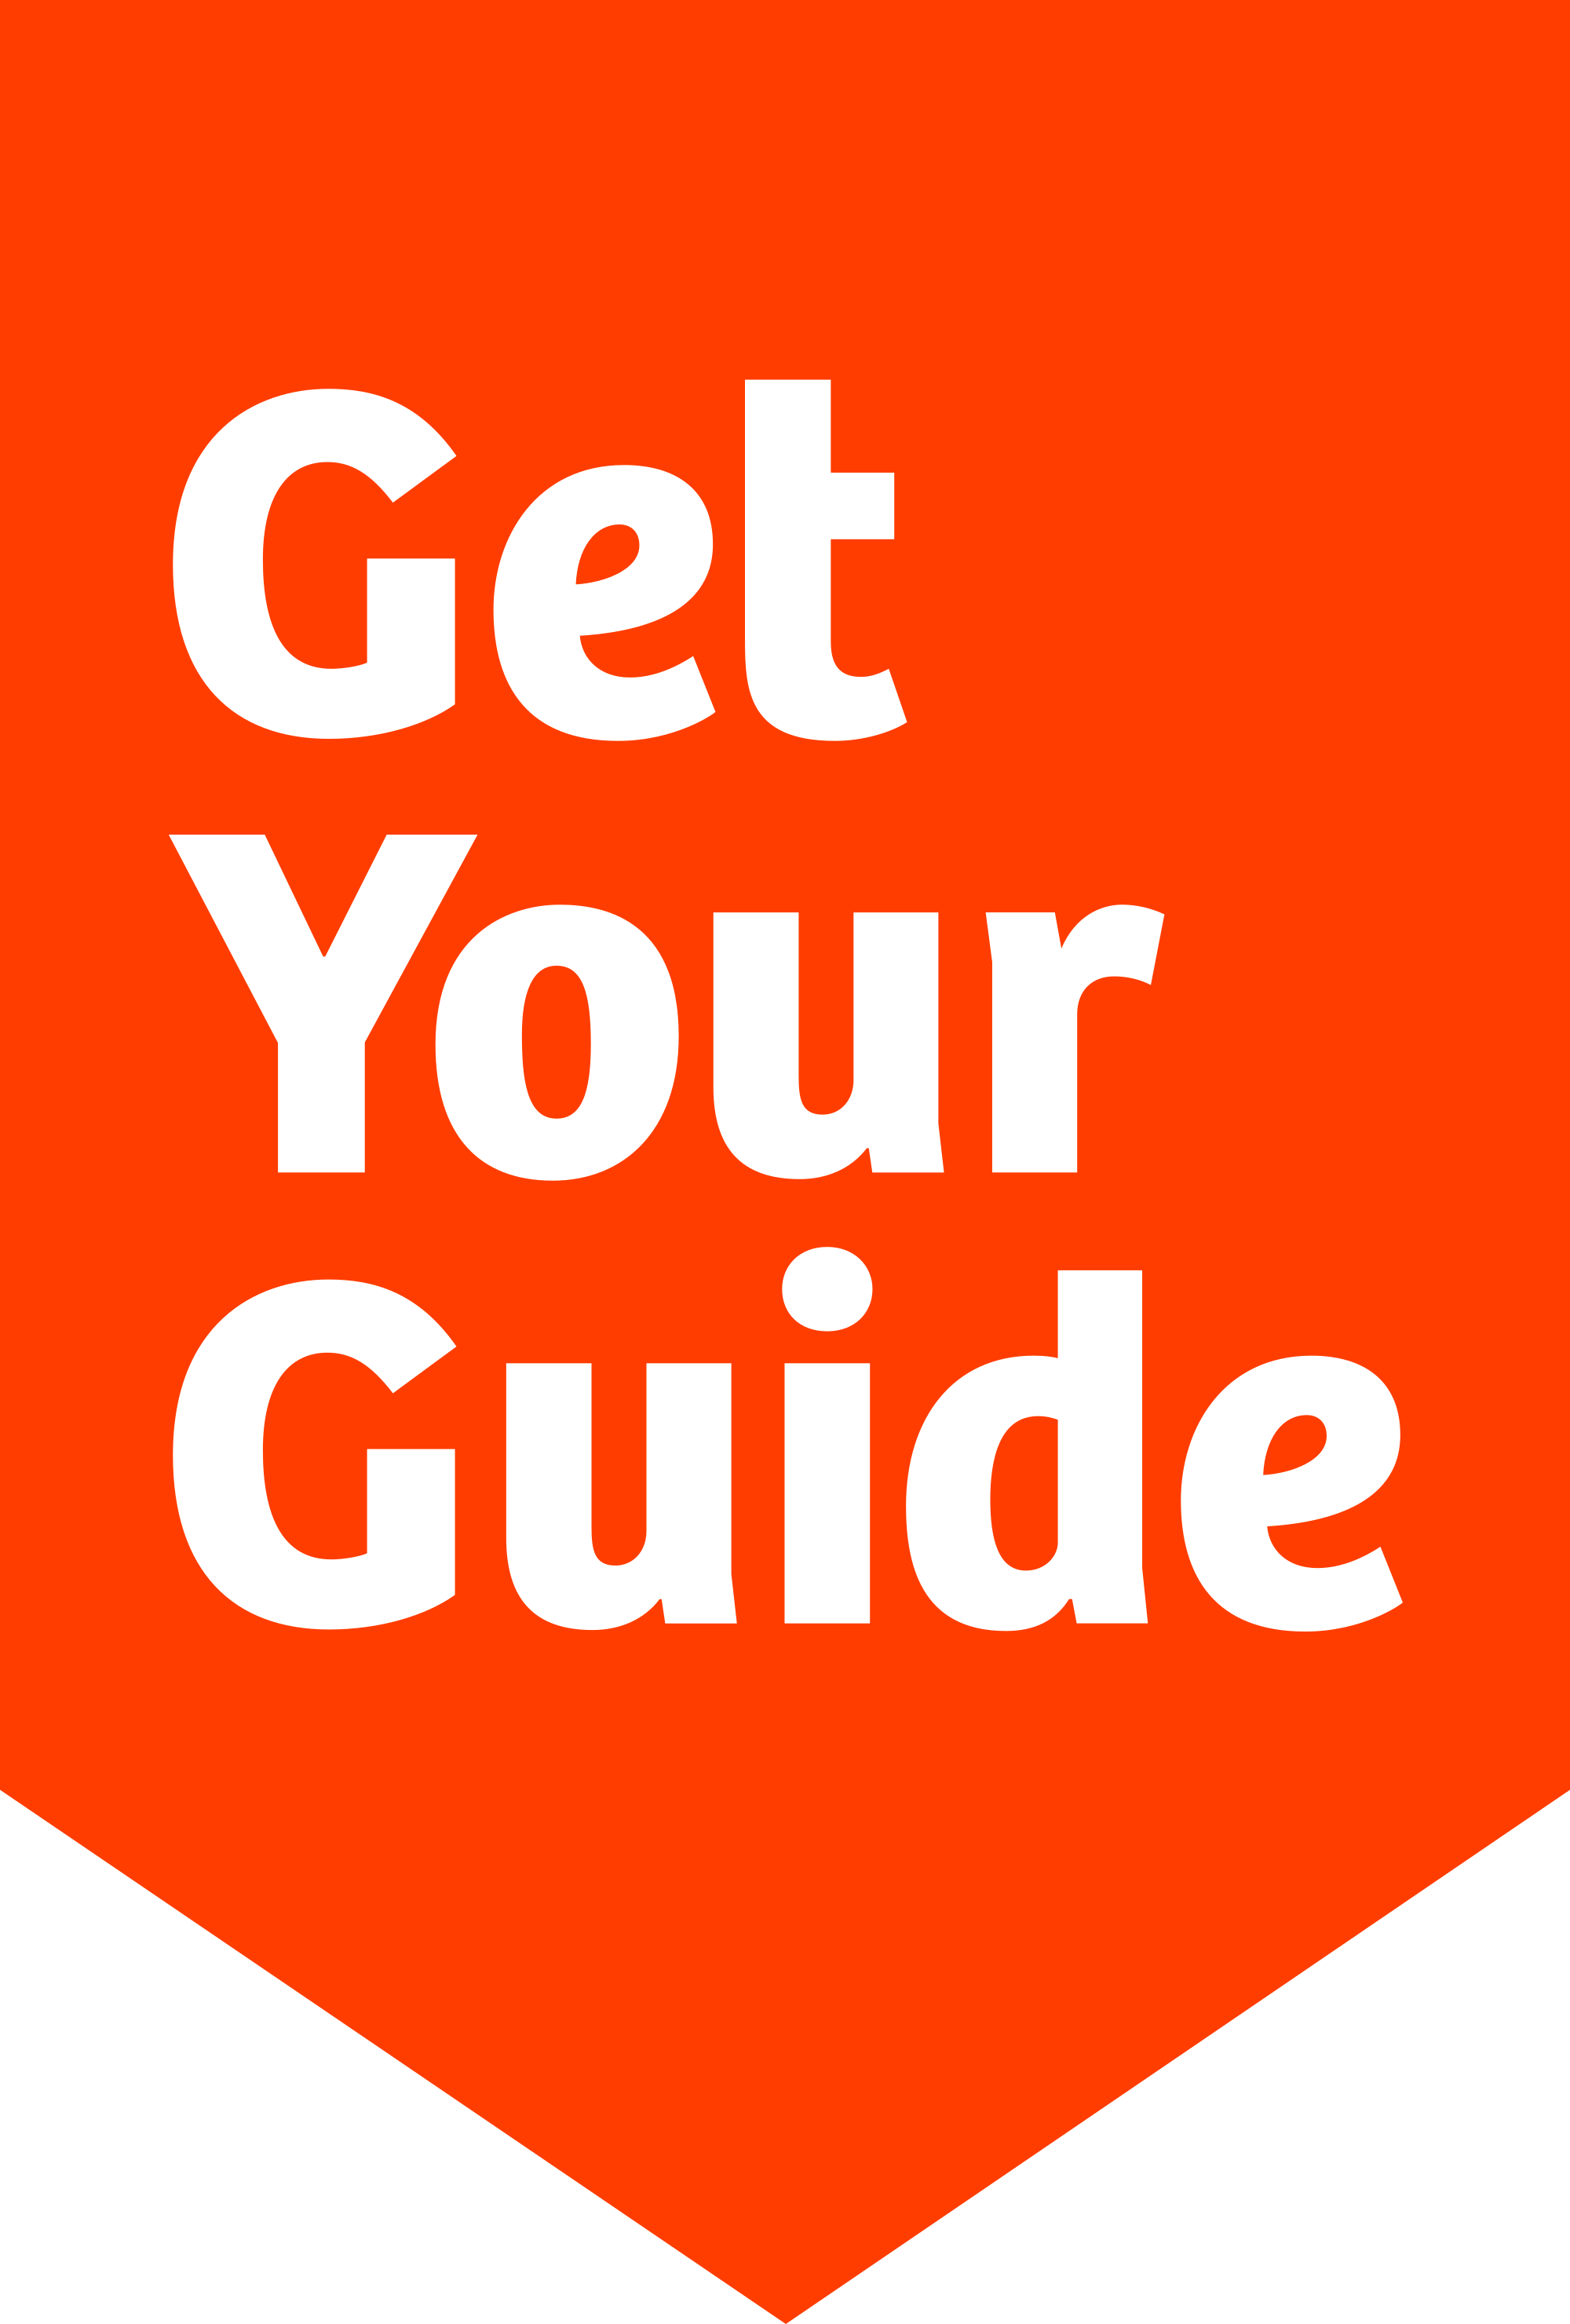 GetYourGuide-logo.png